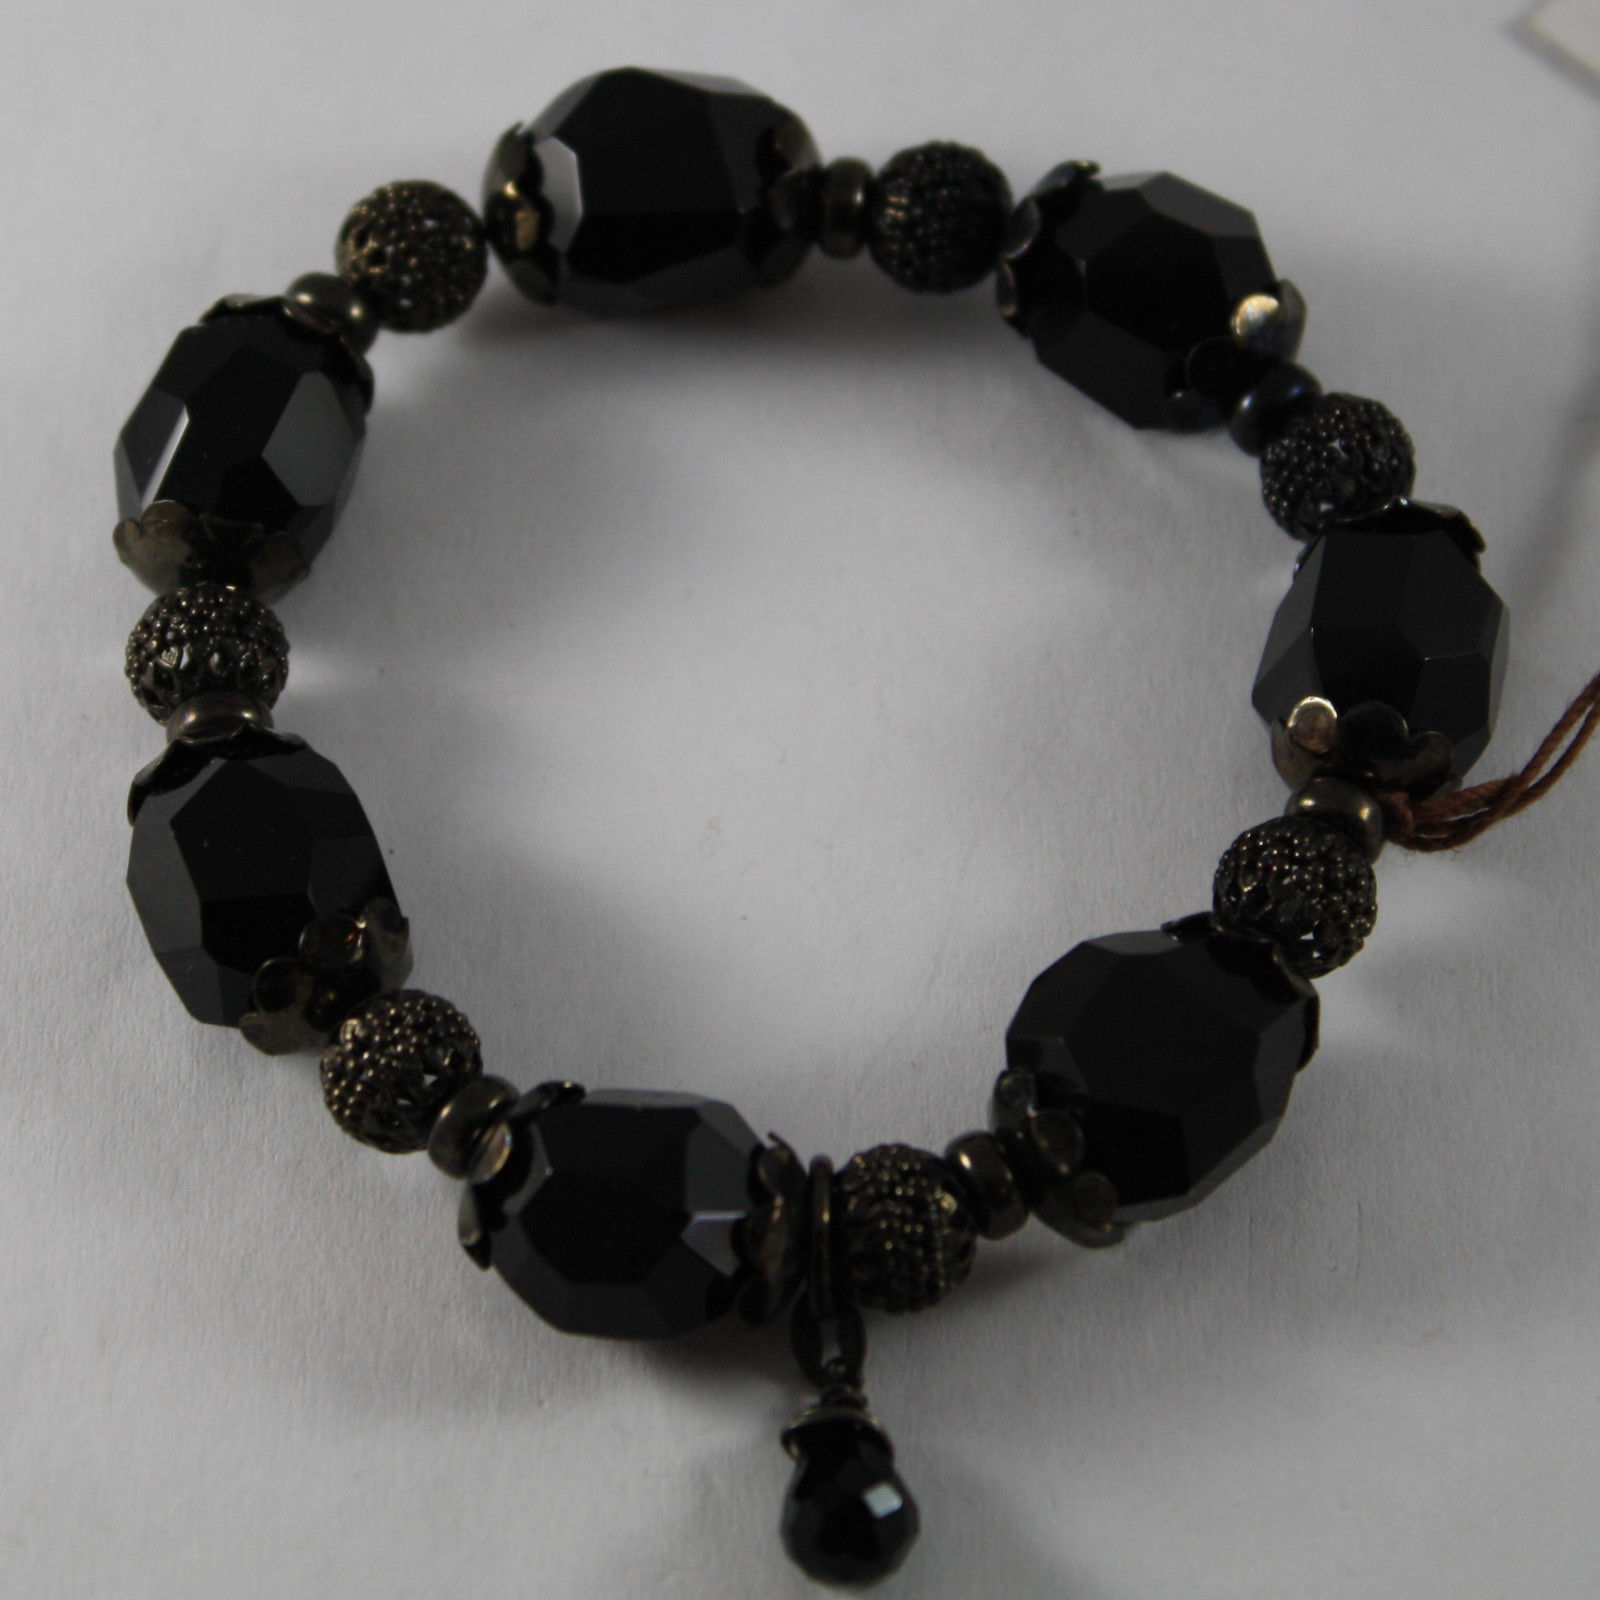 .925 RHODIUM SILVER BURNISH ELASTIC BRACELET WITH BLACK ONYX AND SPHERES